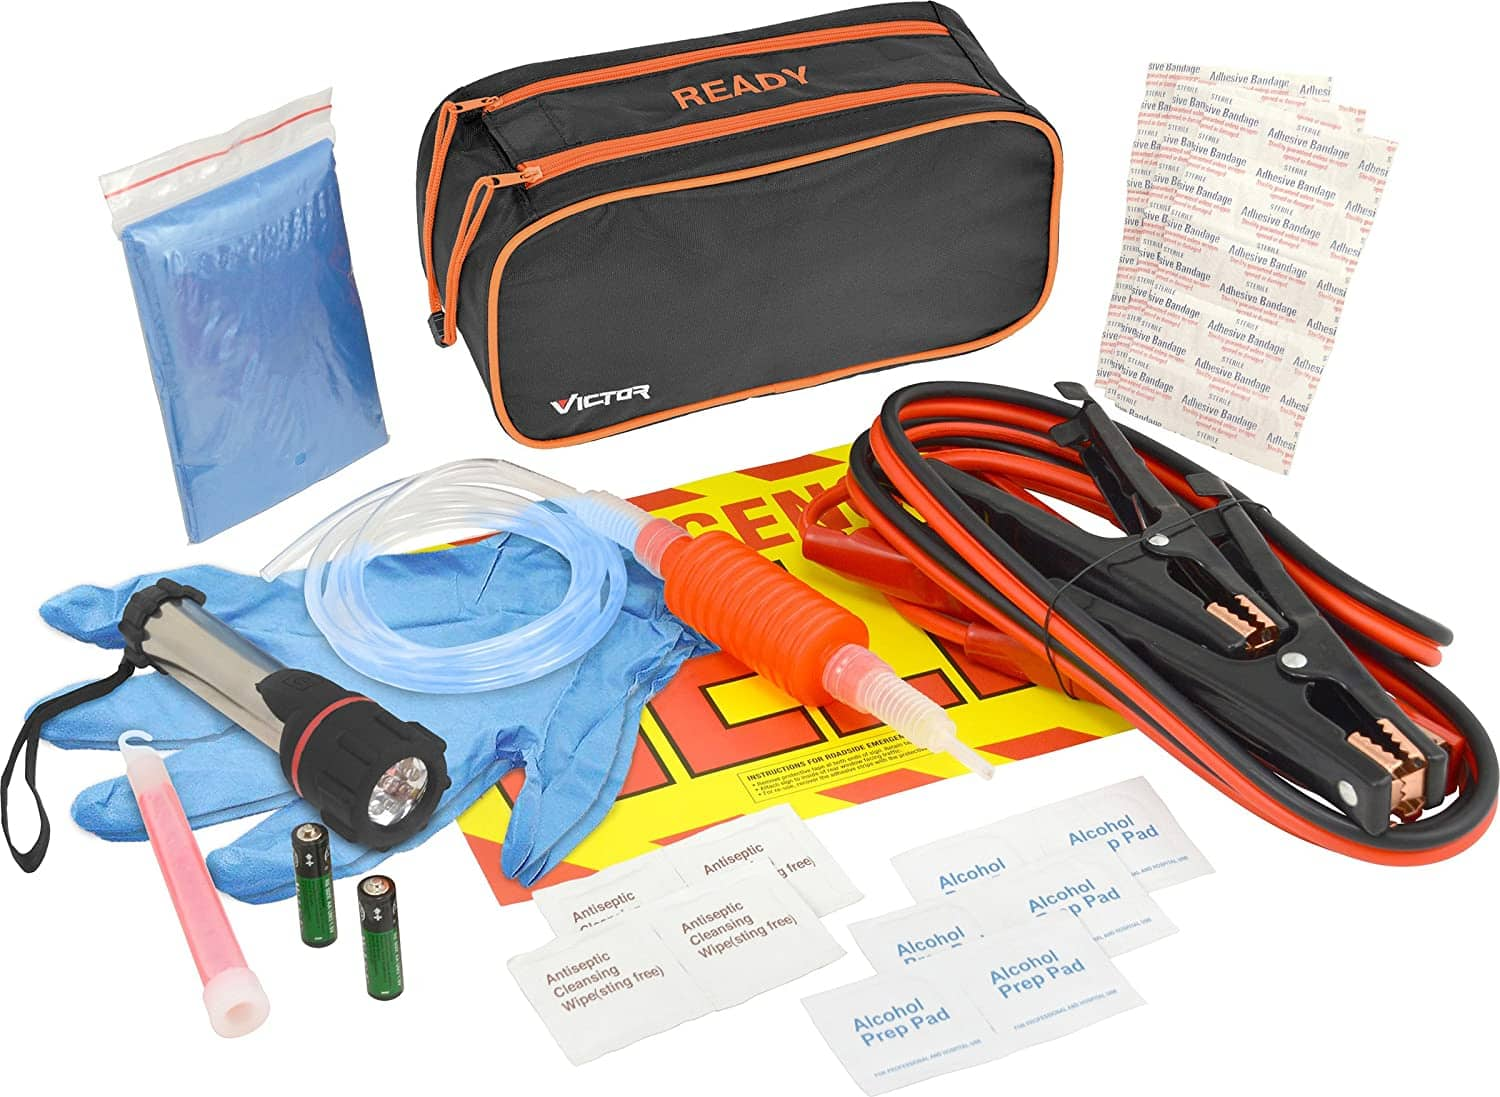 36-Piece Victor Ready Emergency Road Kit $11 + 2.5% SD Cashback + Free Shipping w/ Prime